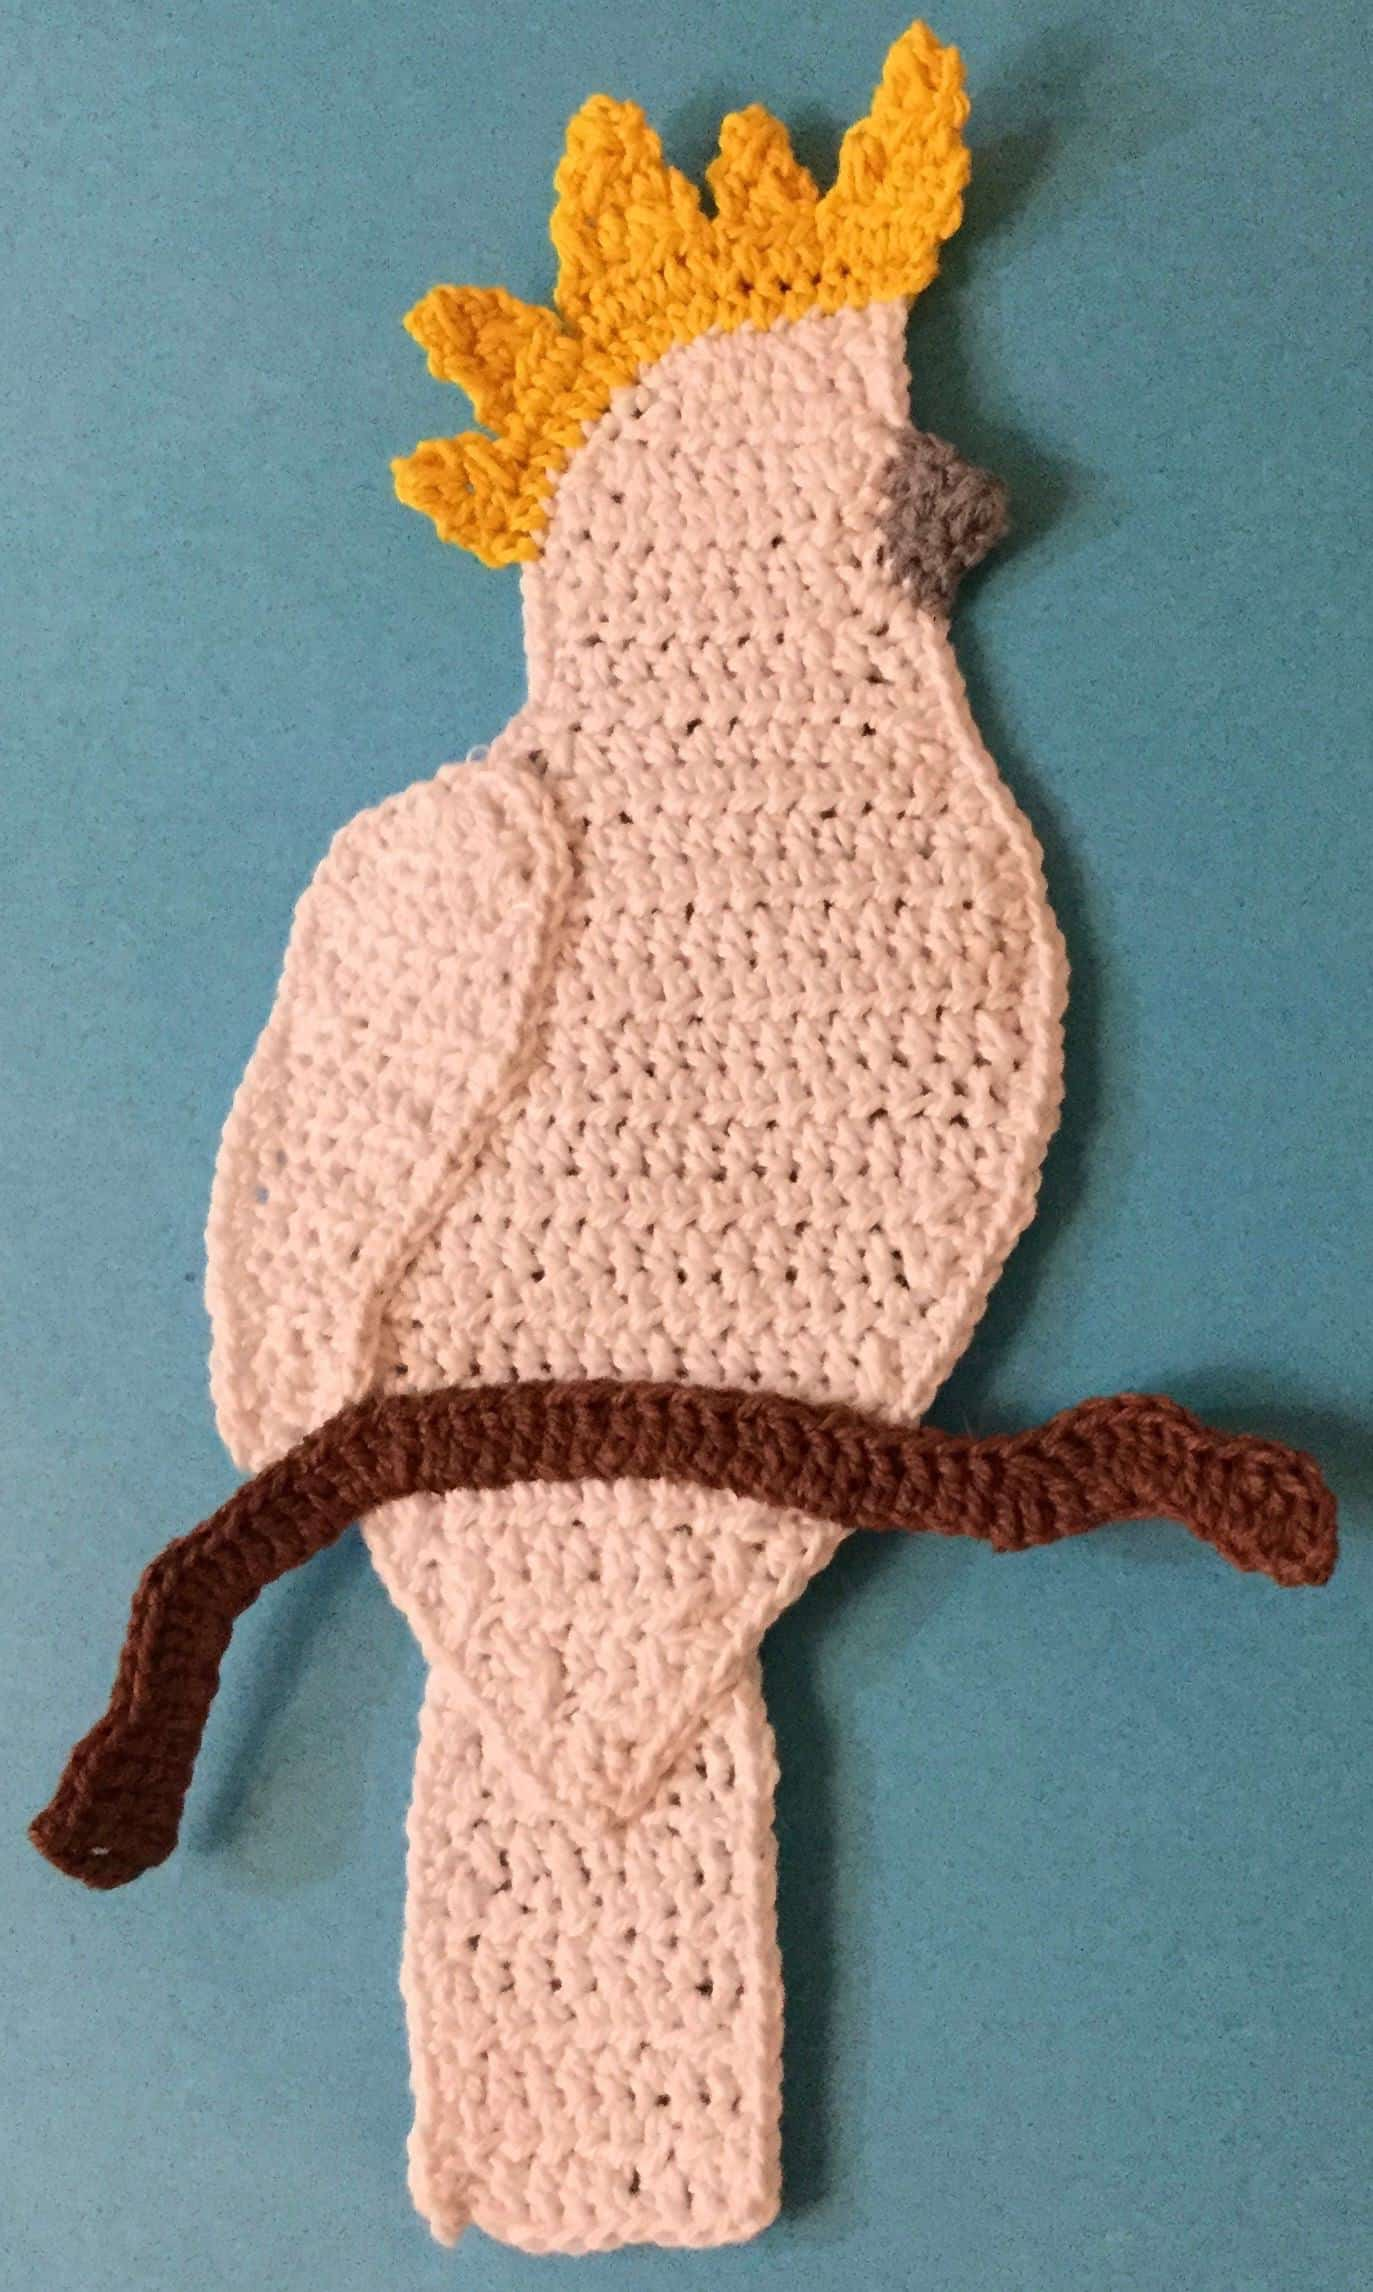 Crochet Cockatoo Body With Branch Kerris Crochet